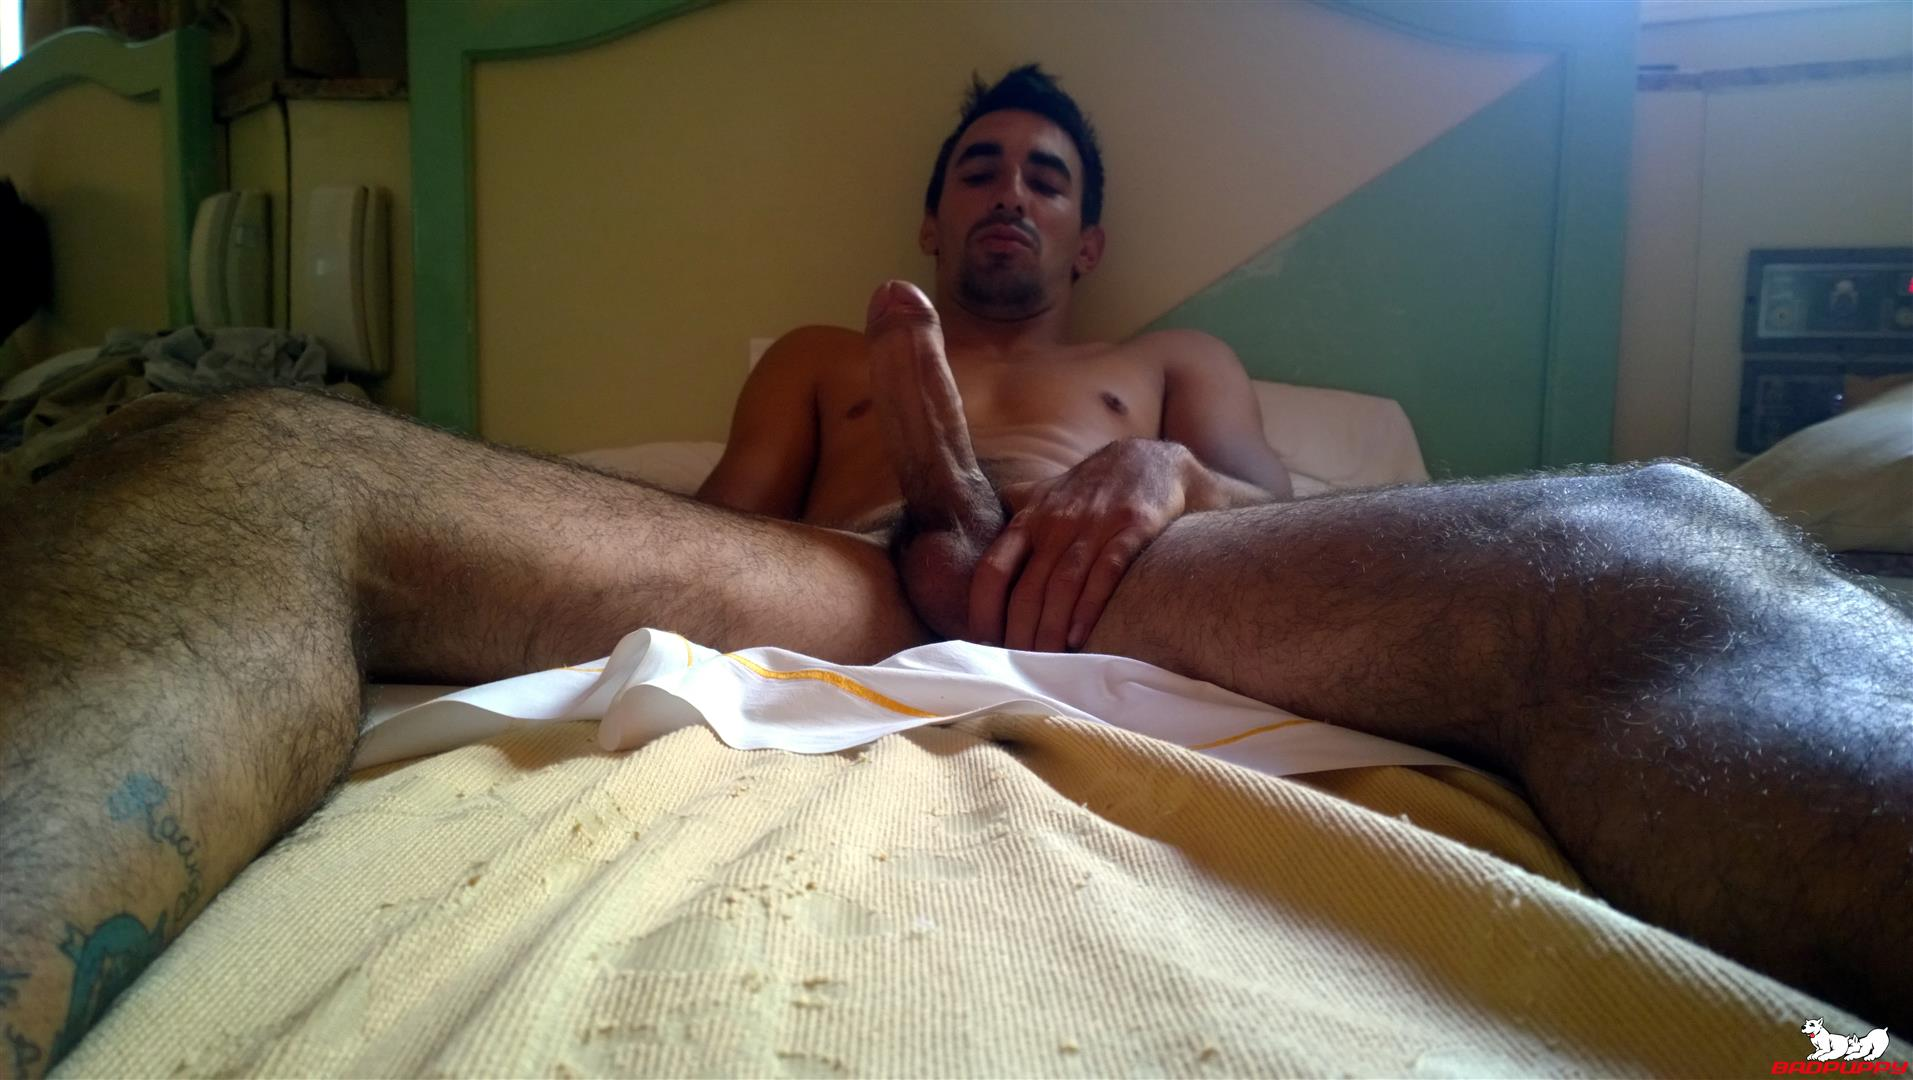 Badpuppy-Fabian-Flores-Argentinian-with-a-Big-Uncut-Cock-07 Argentinian Hunk With A Big Uncut Cock Auditions For Gay Porn